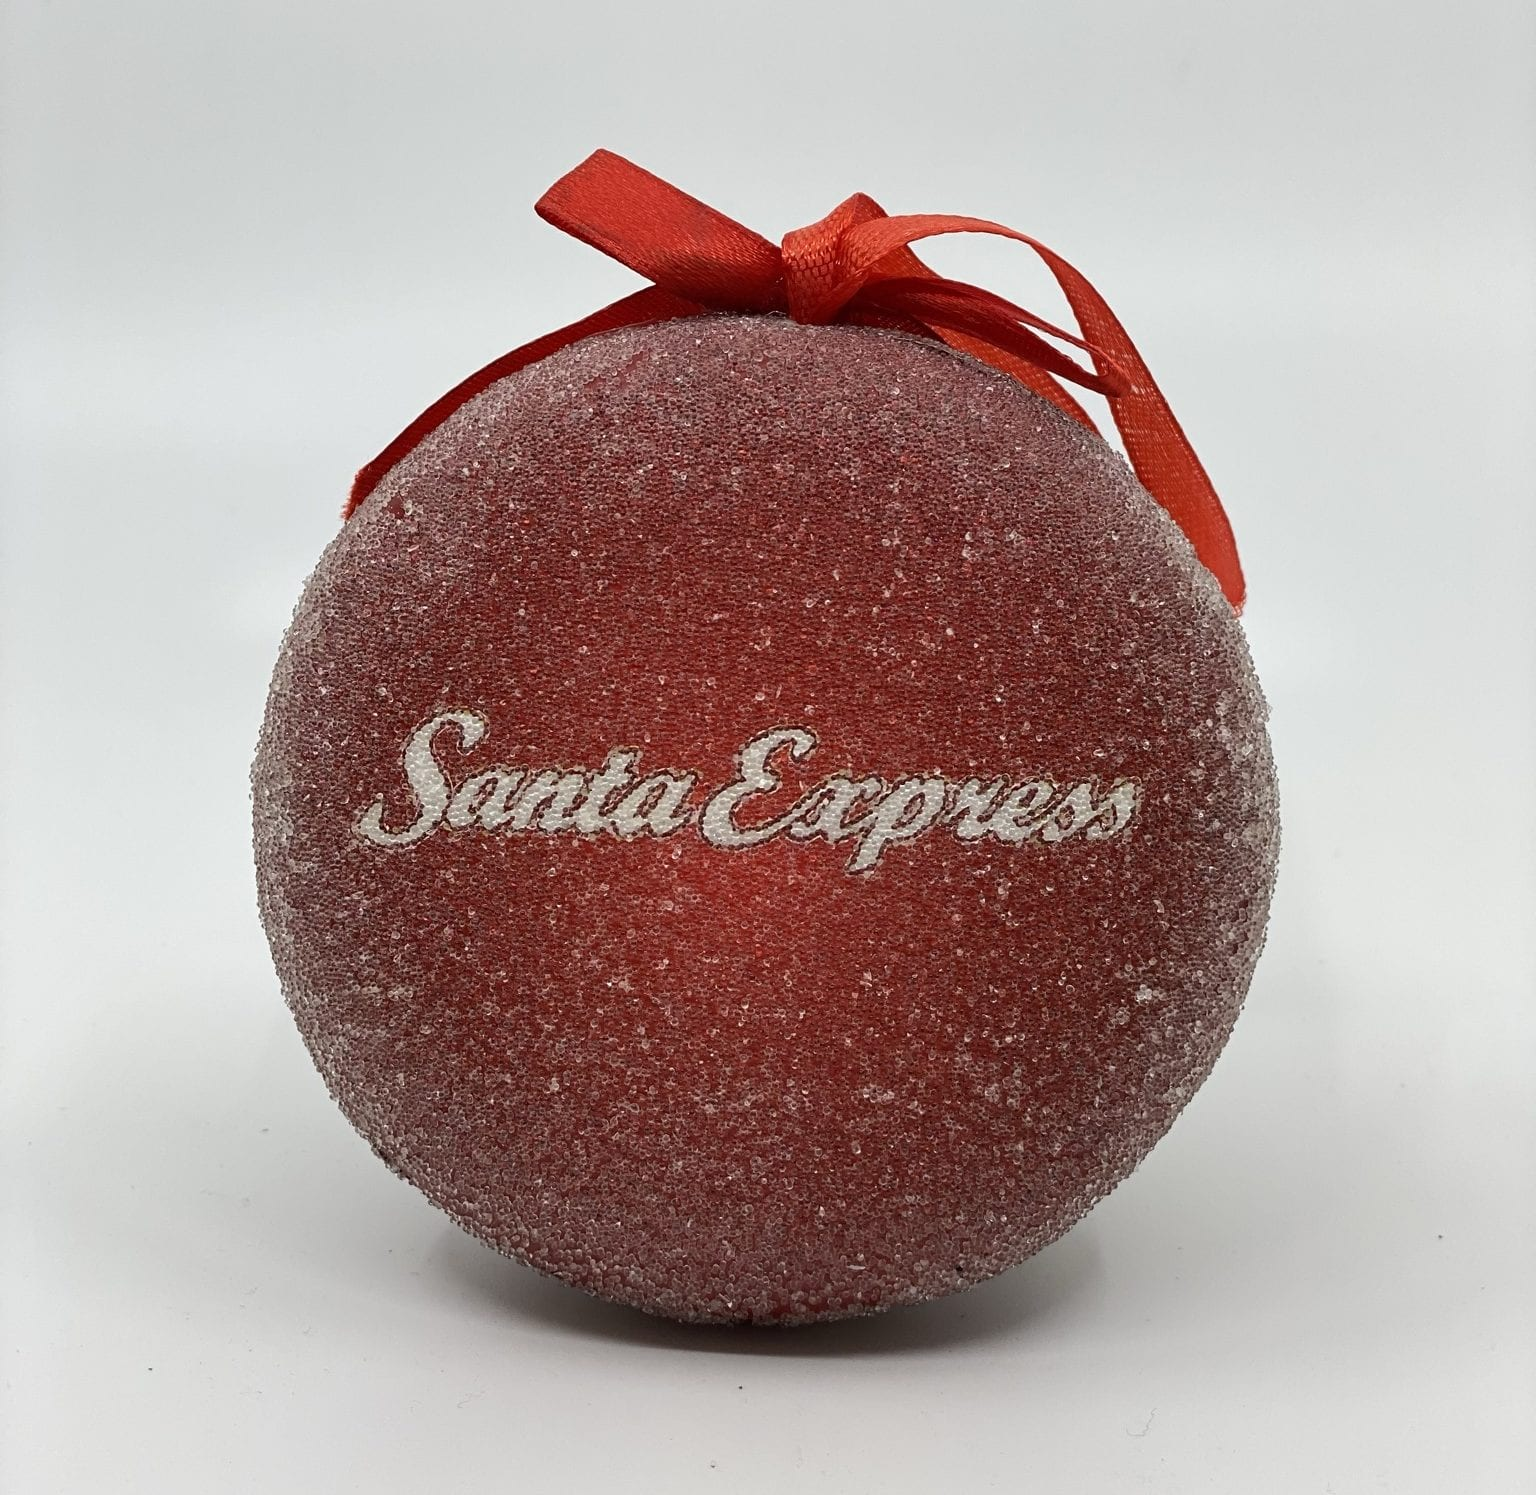 Frosted glass Santa Express Train Ornament 2020